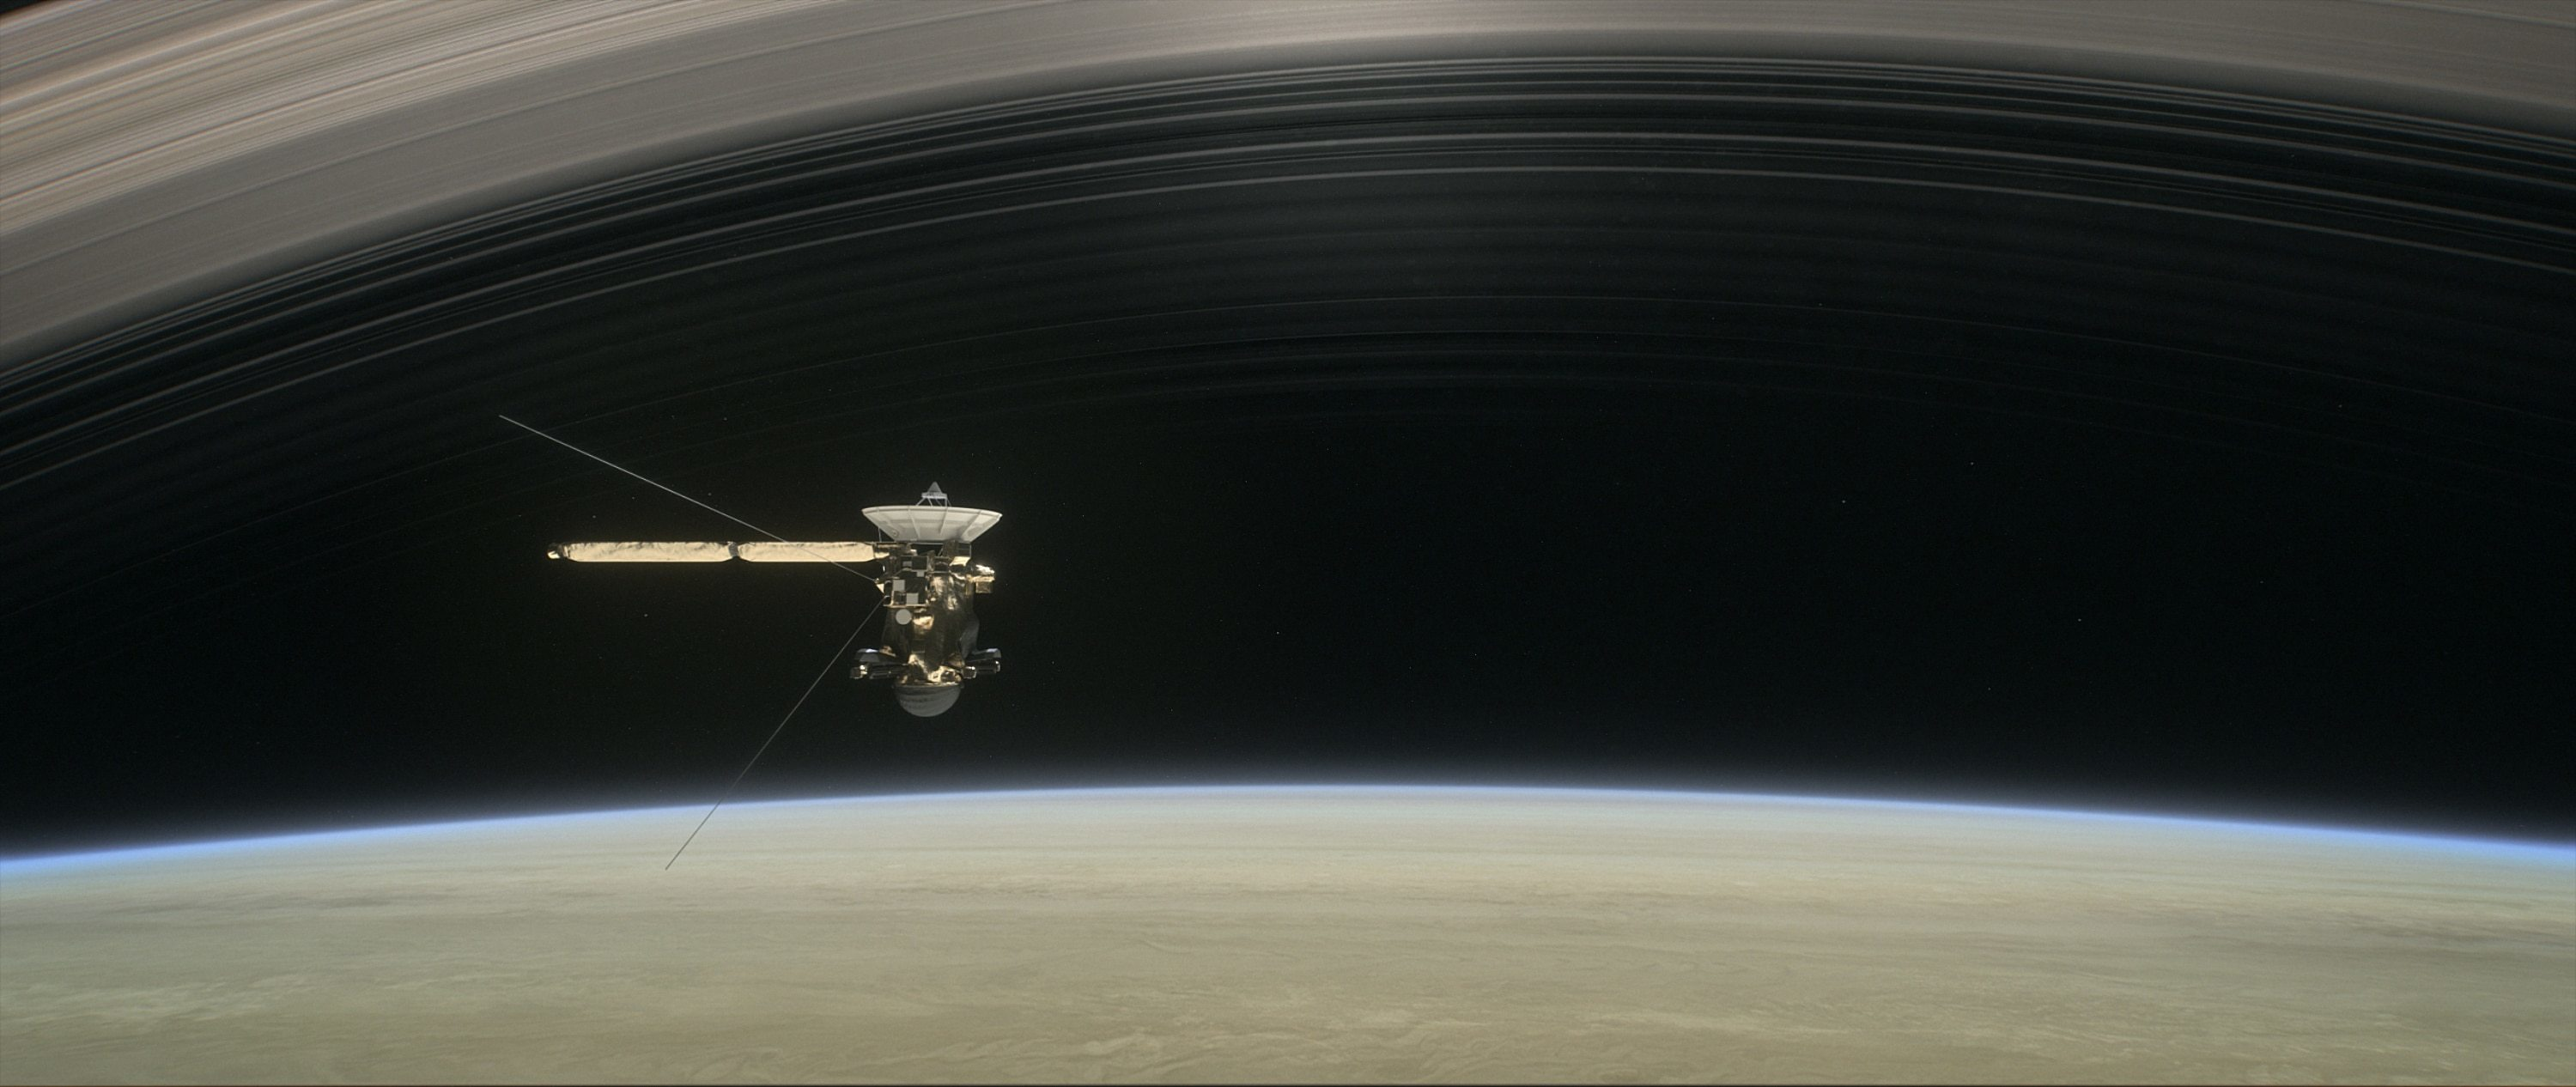 This artist's rendering shows Cassini as the spacecraft makes one of its final five dives